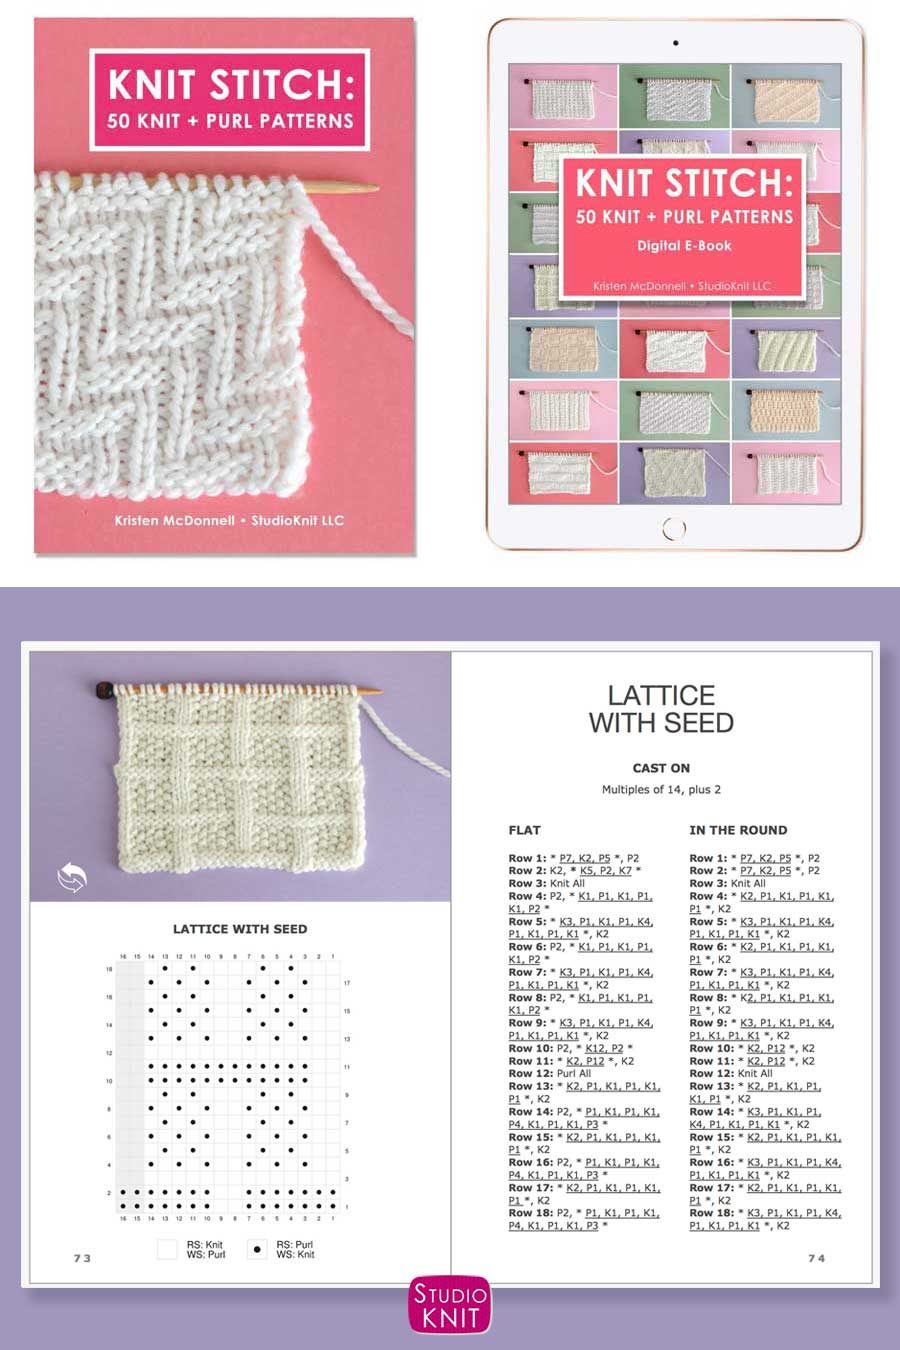 Knit Stitch Pattern Book with Lattice withe Seed Stitch Pattern by Studio Knit